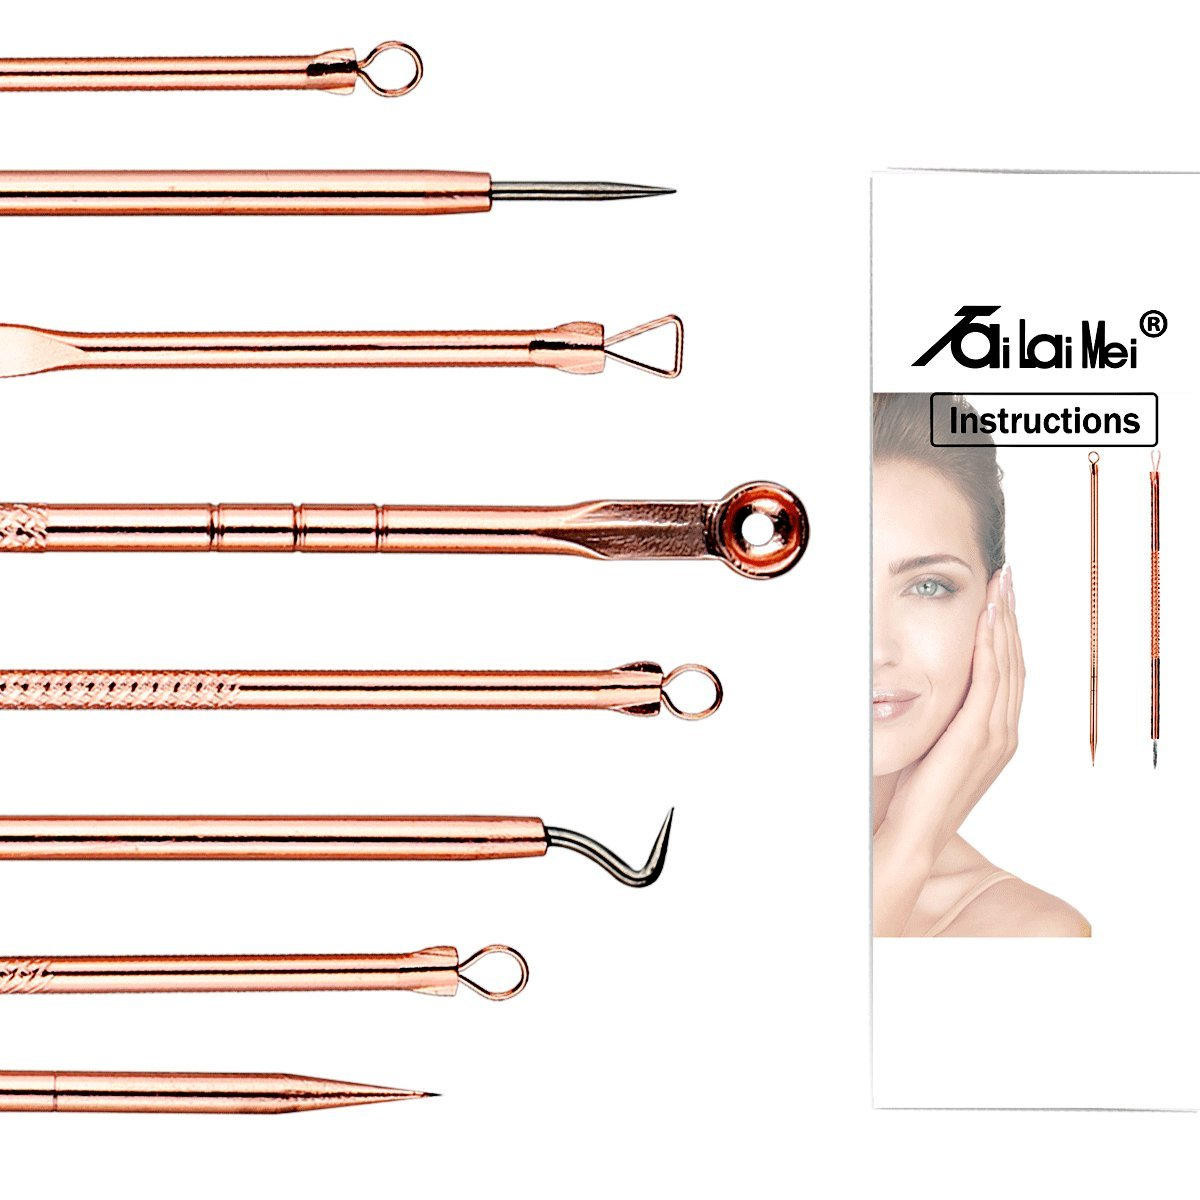 TailaiMei Blackhead Remover Kit, Comedone Extractor Tool Set for Facial Zit Popping, Anti-microbial Double-side 4 Pieces, Treatment for Acne, Blemishes, Whiteheads, Pimples (Rose Gold)